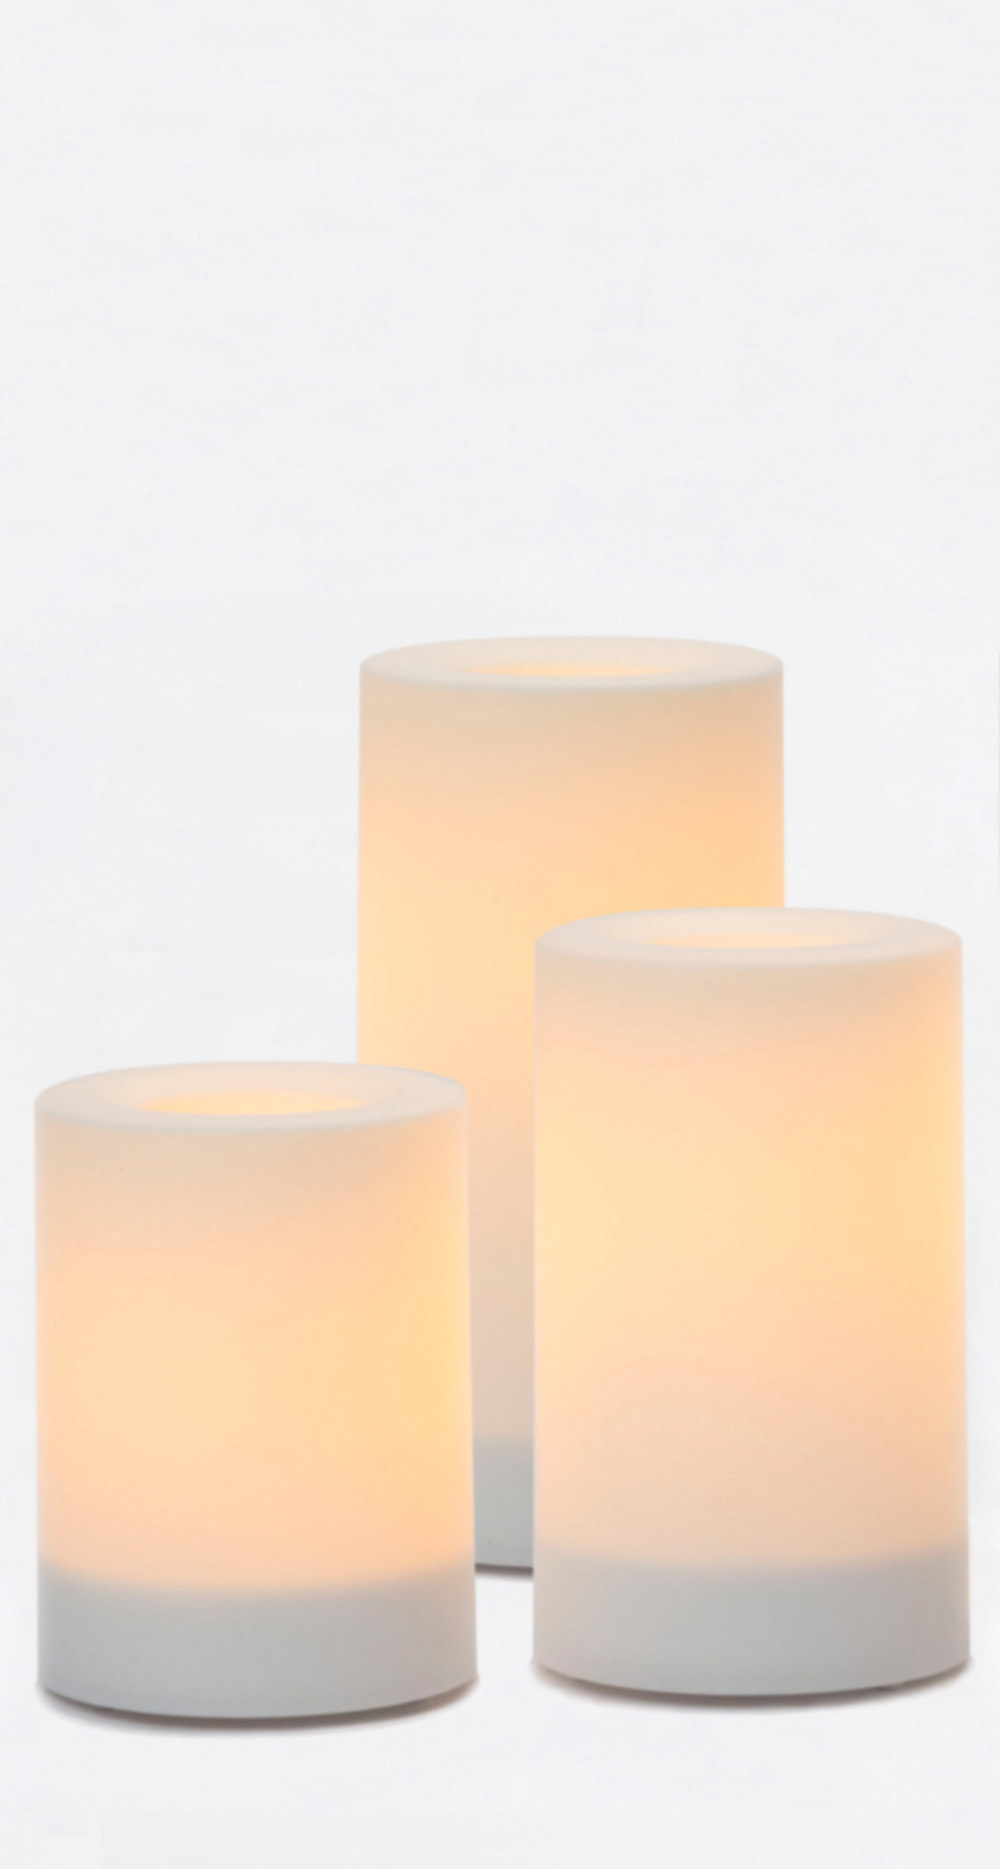 4-5-6 Inch Variety Pack Flameless Outdoor Pillar Candles with Timer - White